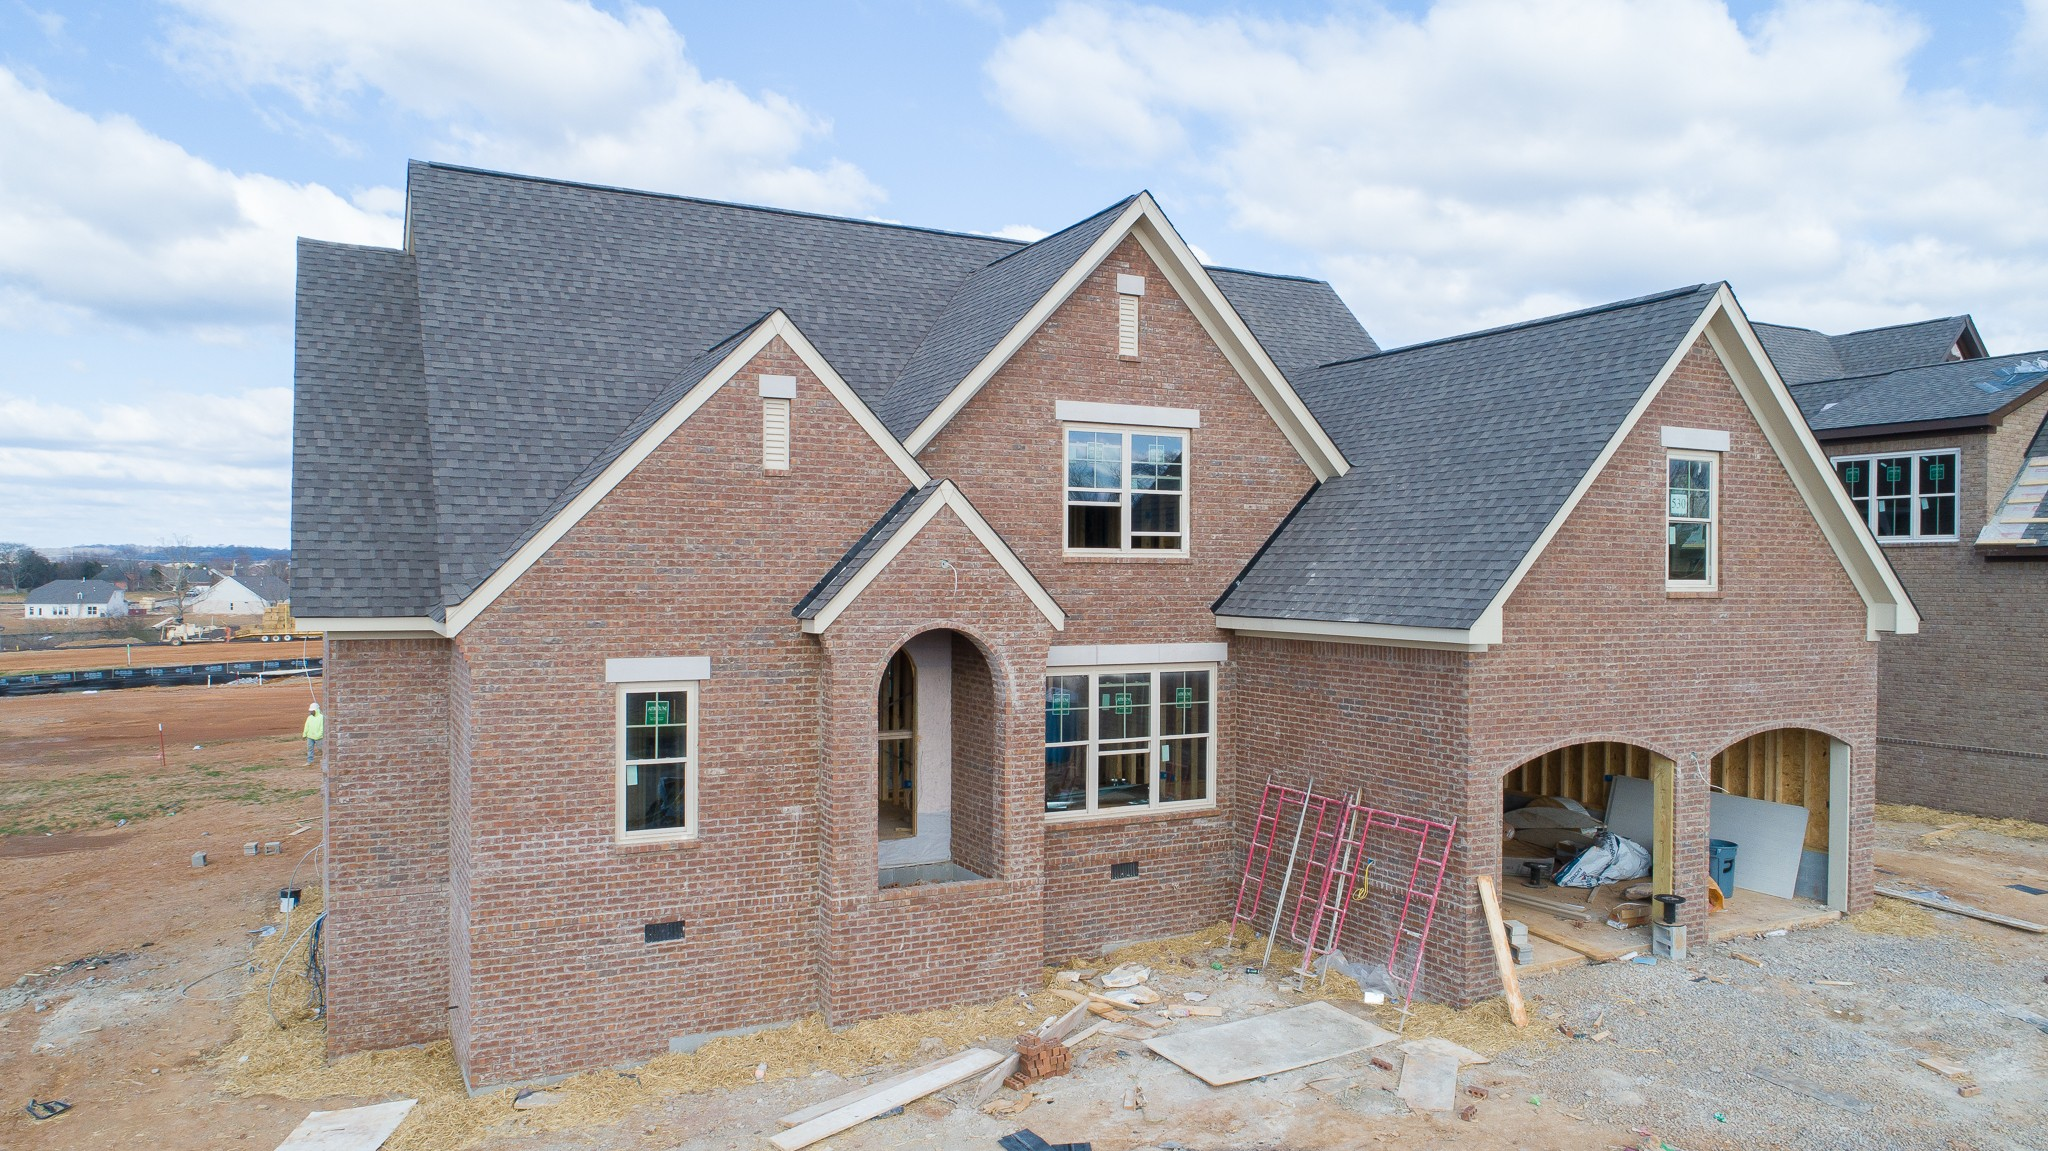 9028 Safe Haven Place Lot 530, Spring Hill, TN 37174 - Spring Hill, TN real estate listing